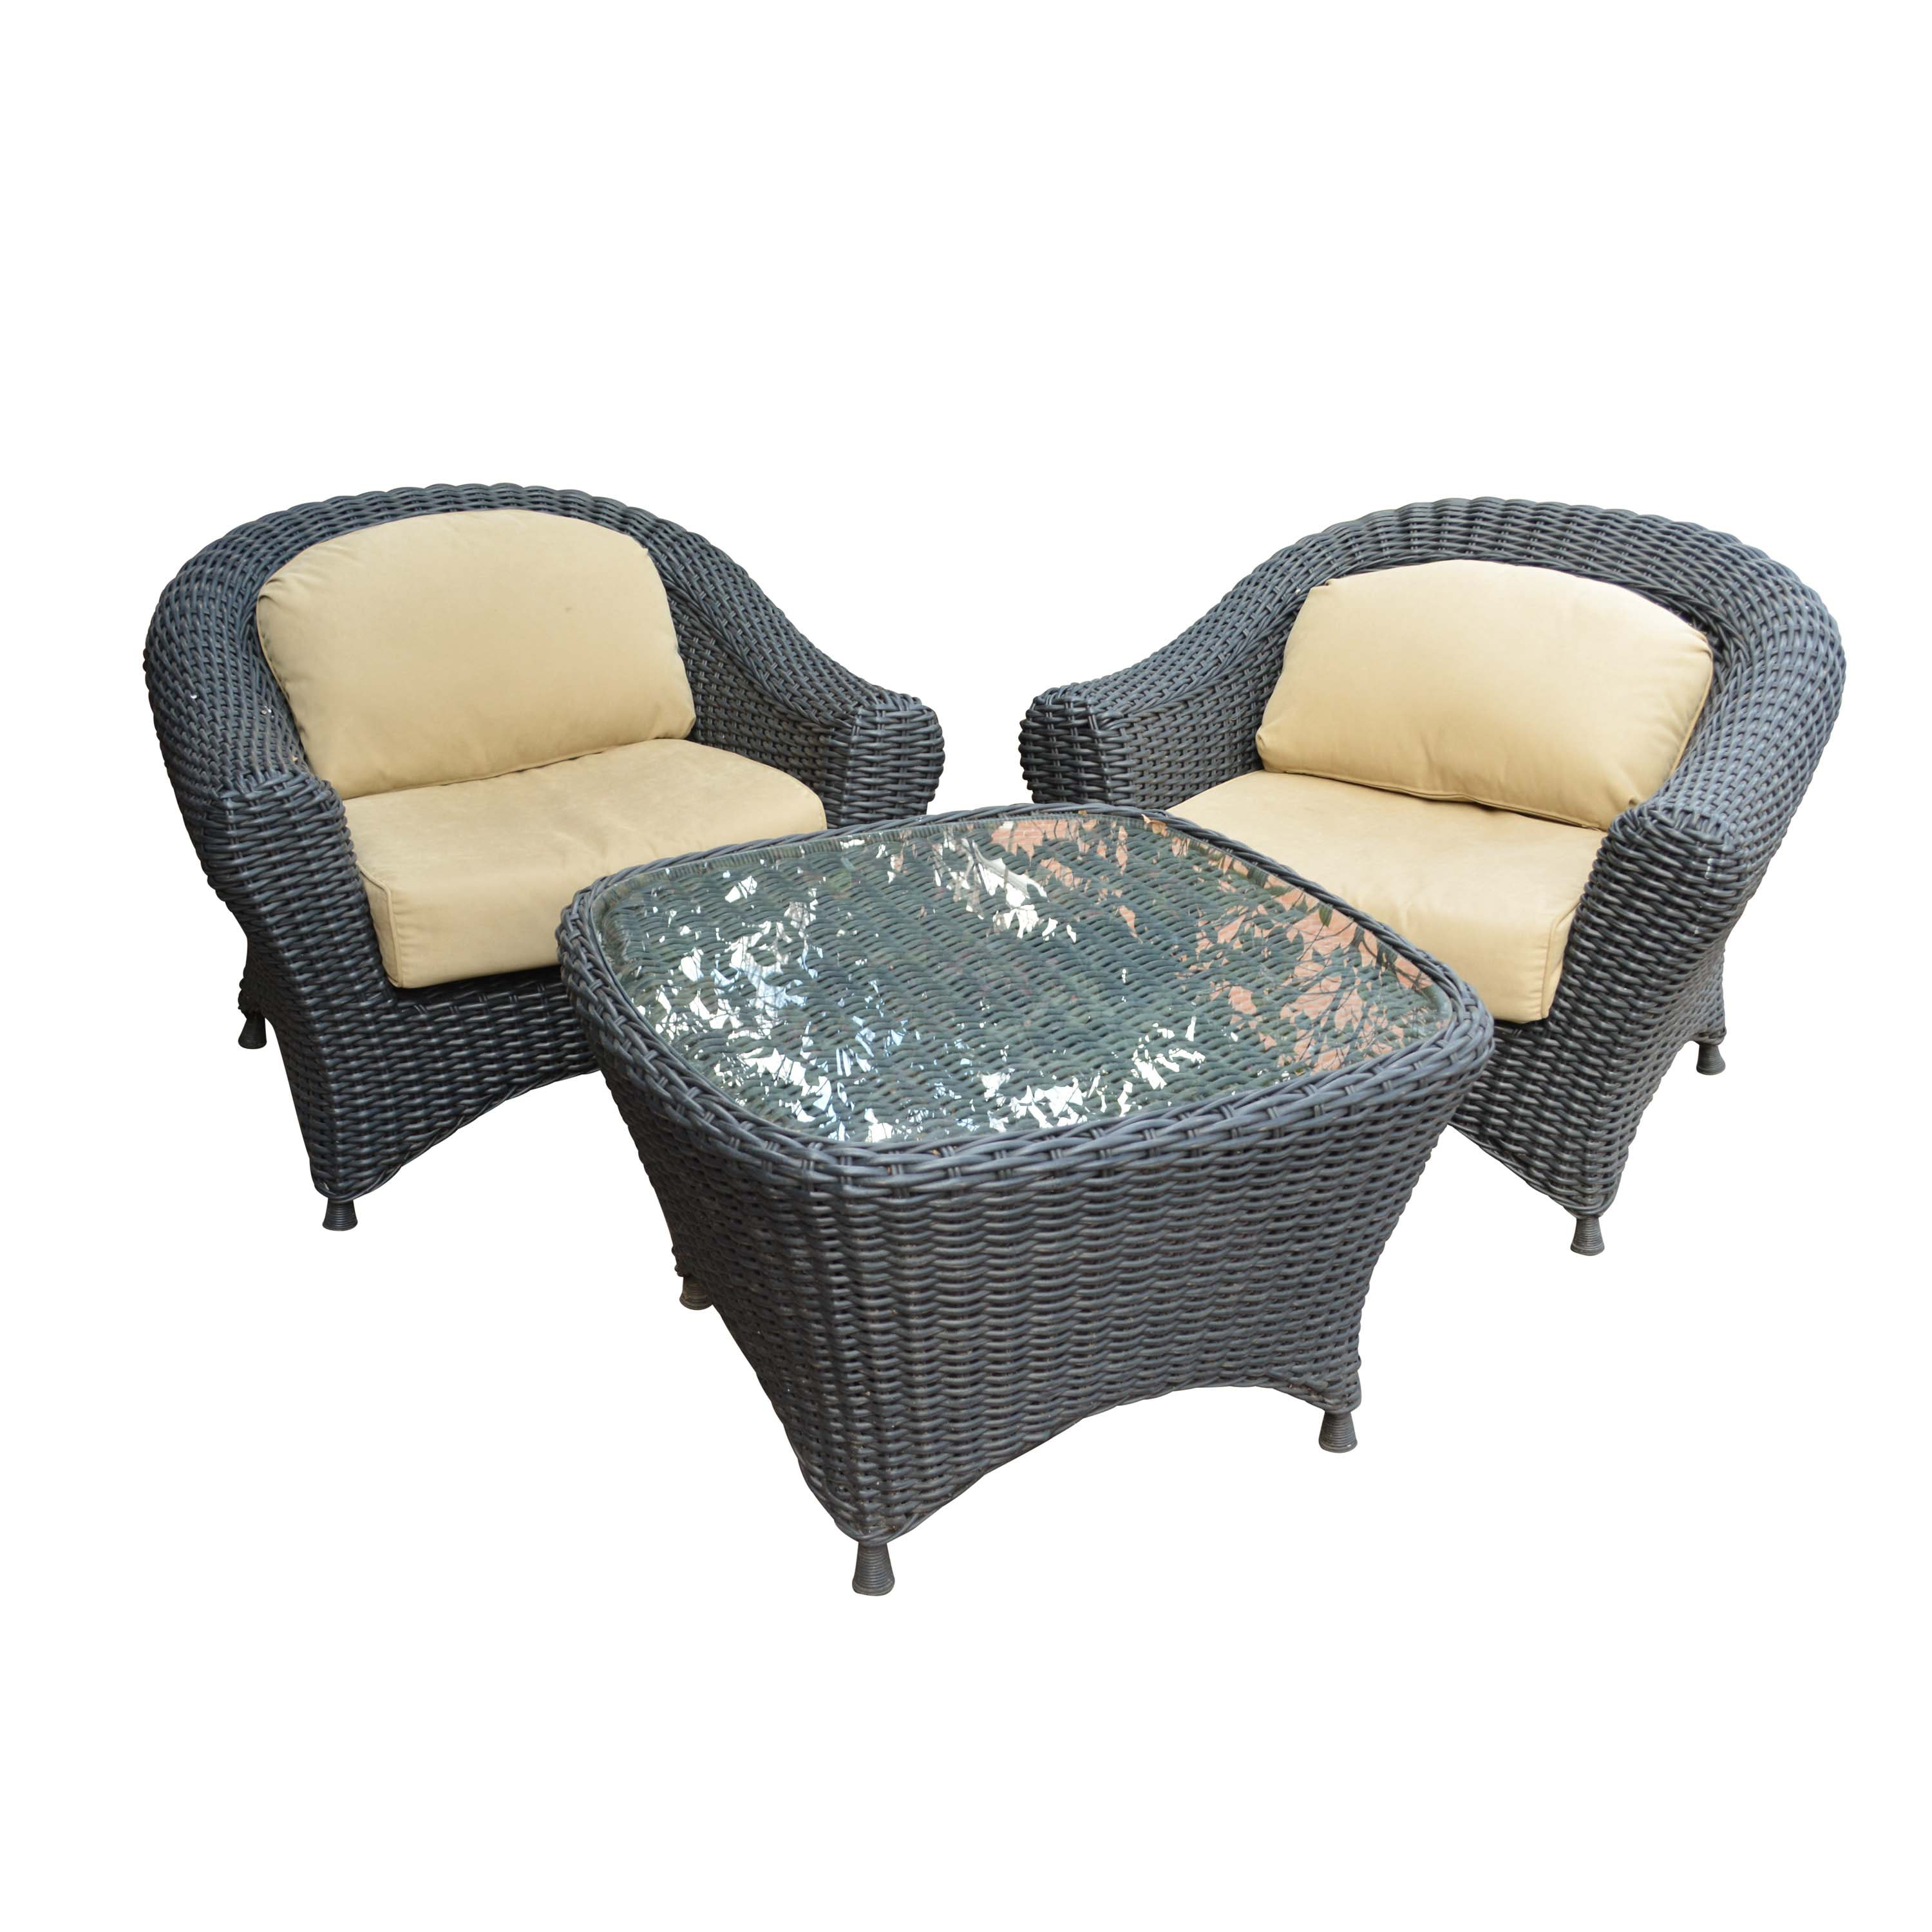 Black Plastic Wicker Armchairs and Glass Top Table